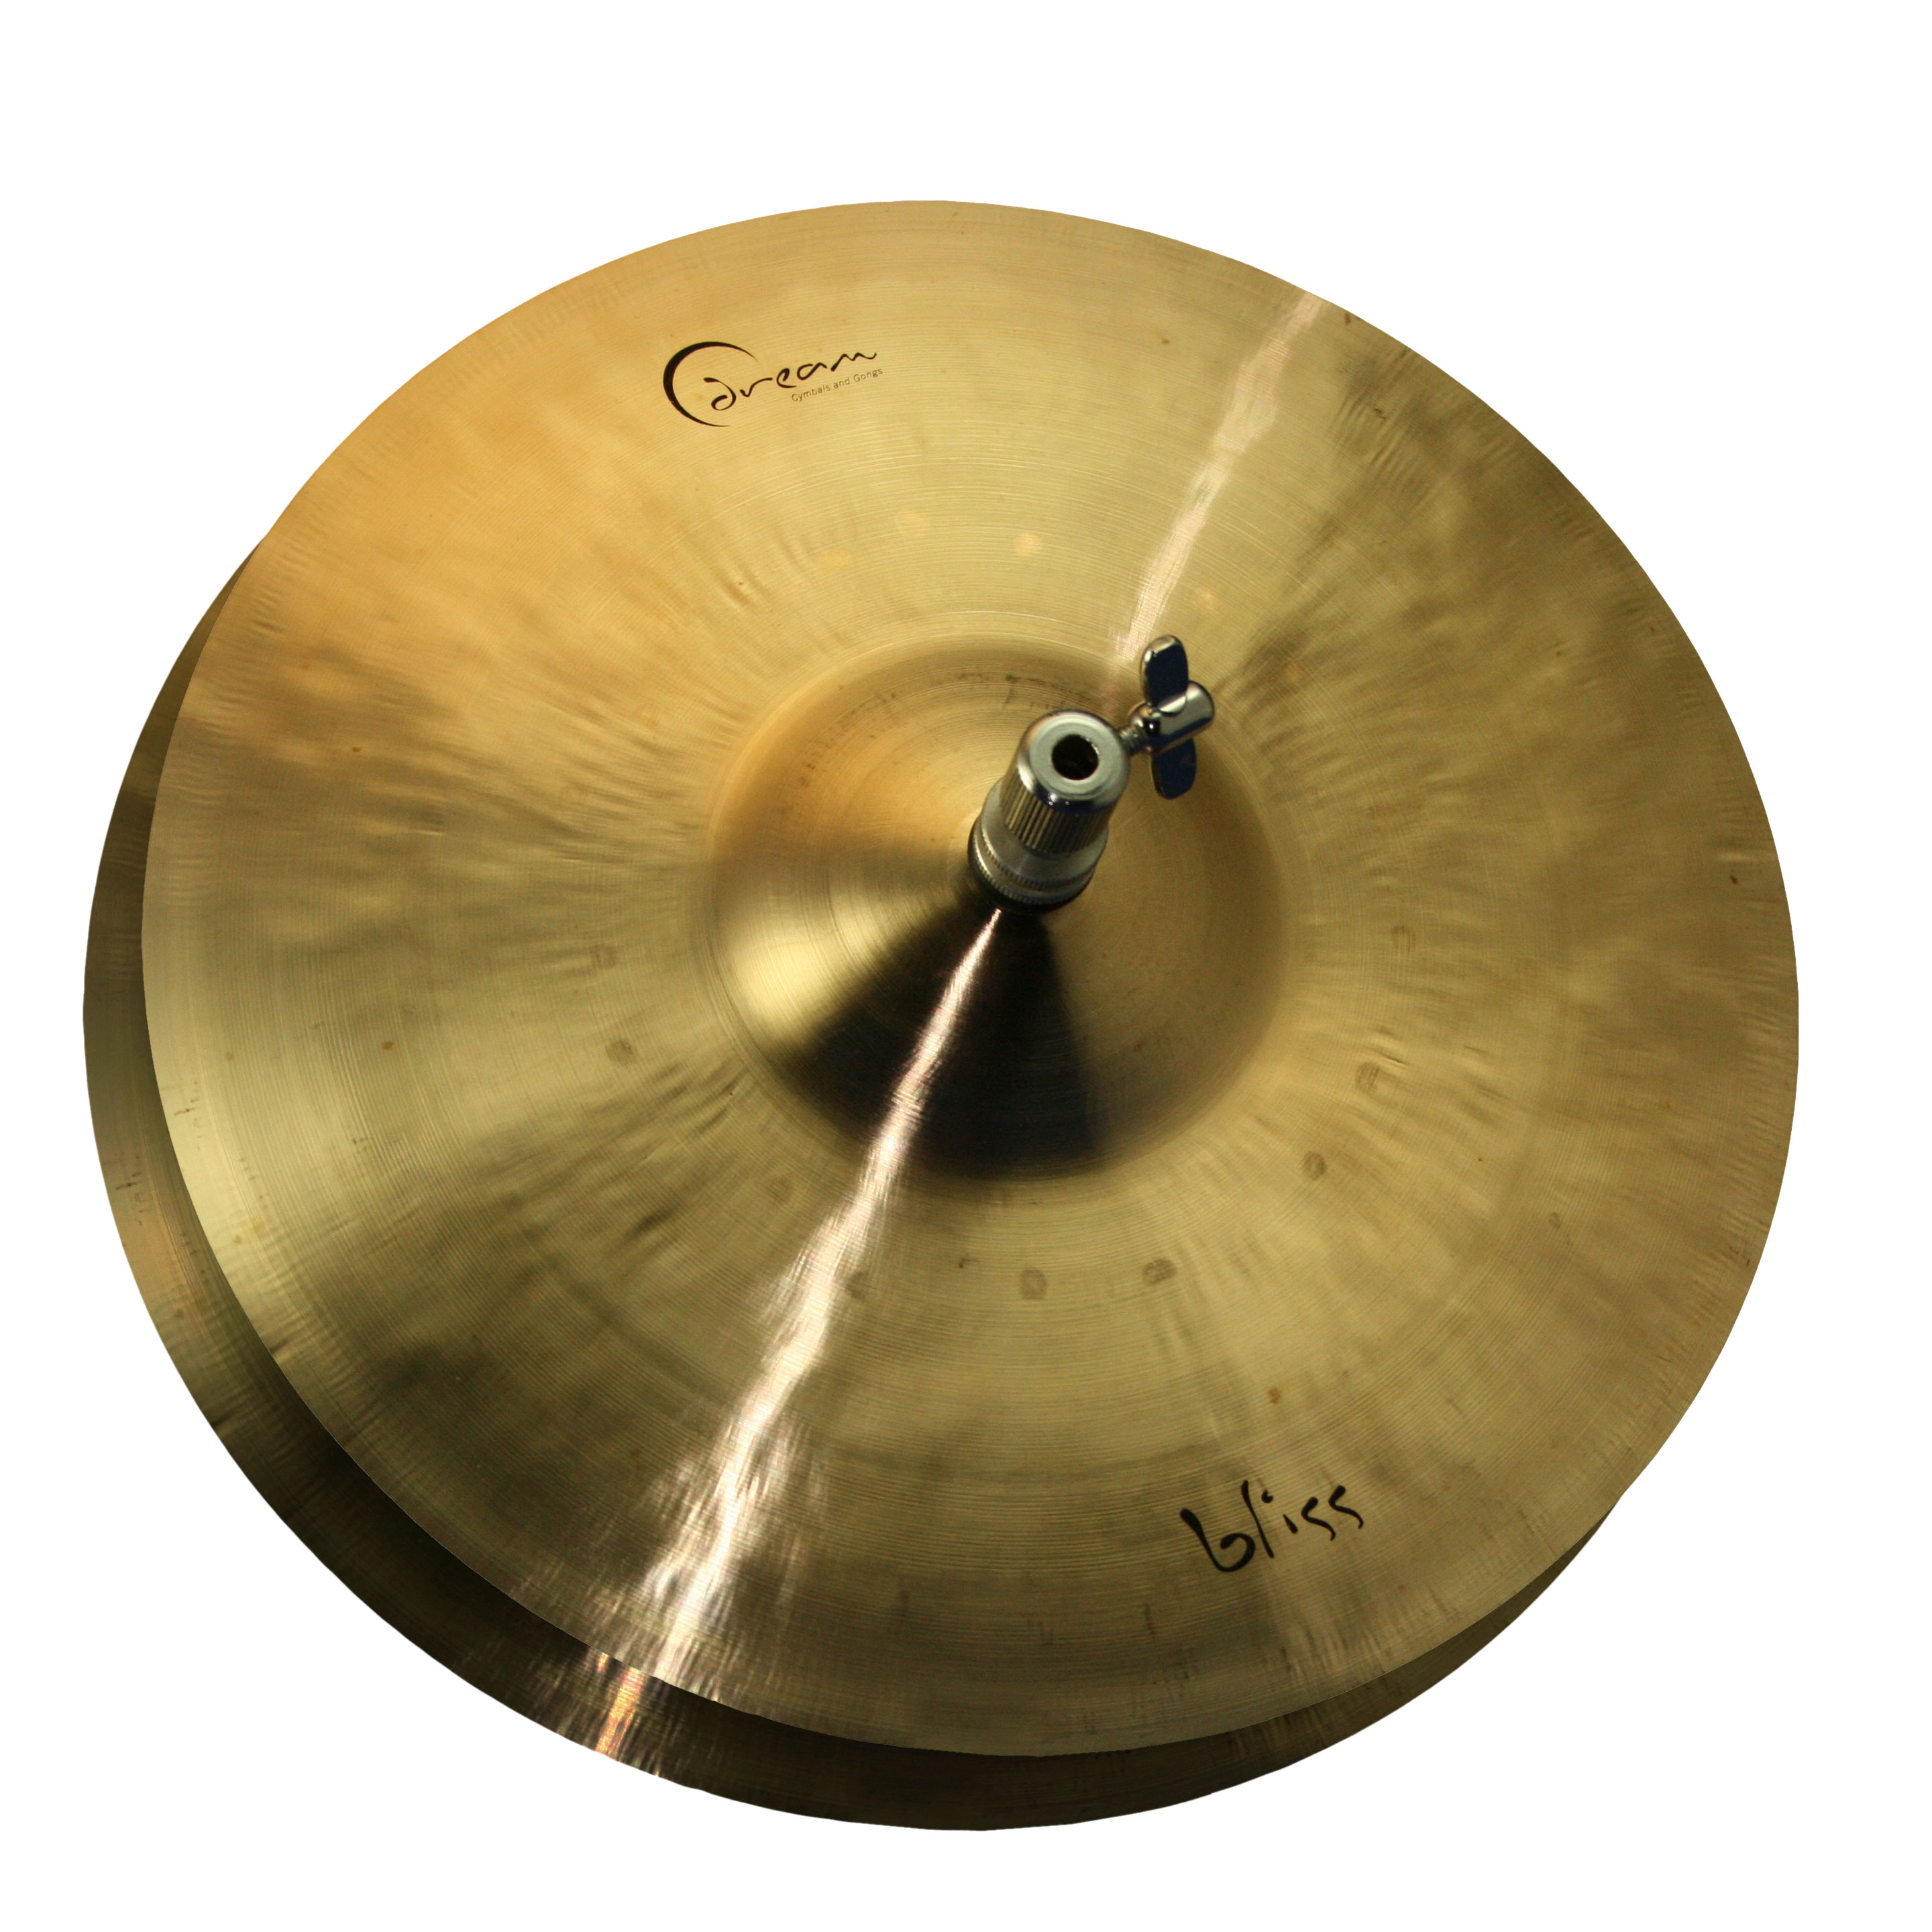 "Dream 13"" Bliss Hi Hat Cymbals"